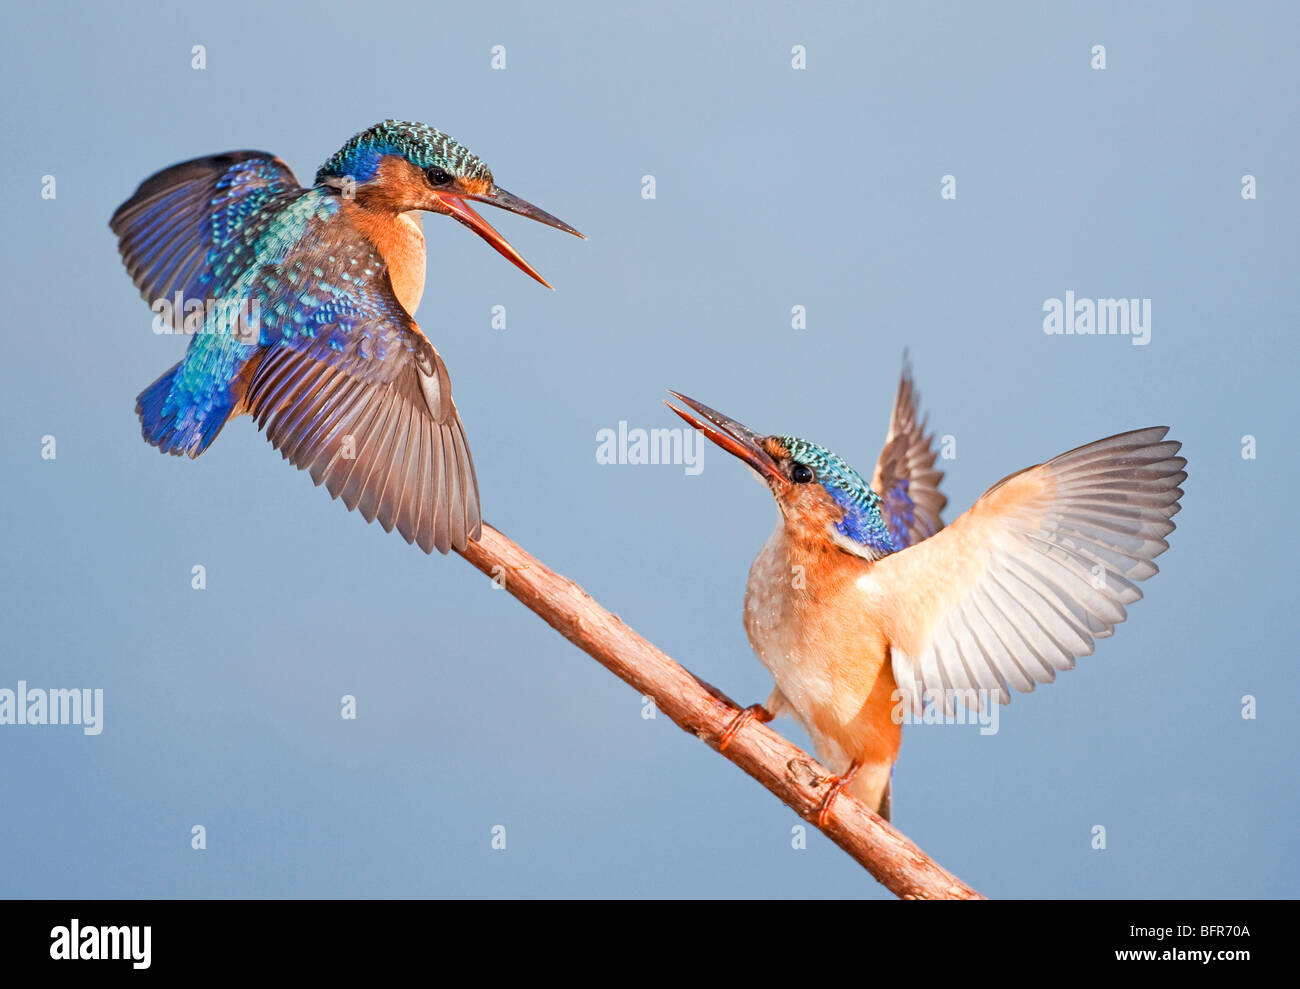 Malachite Kingfisher pair with wings raised interacting on branch - Stock Image